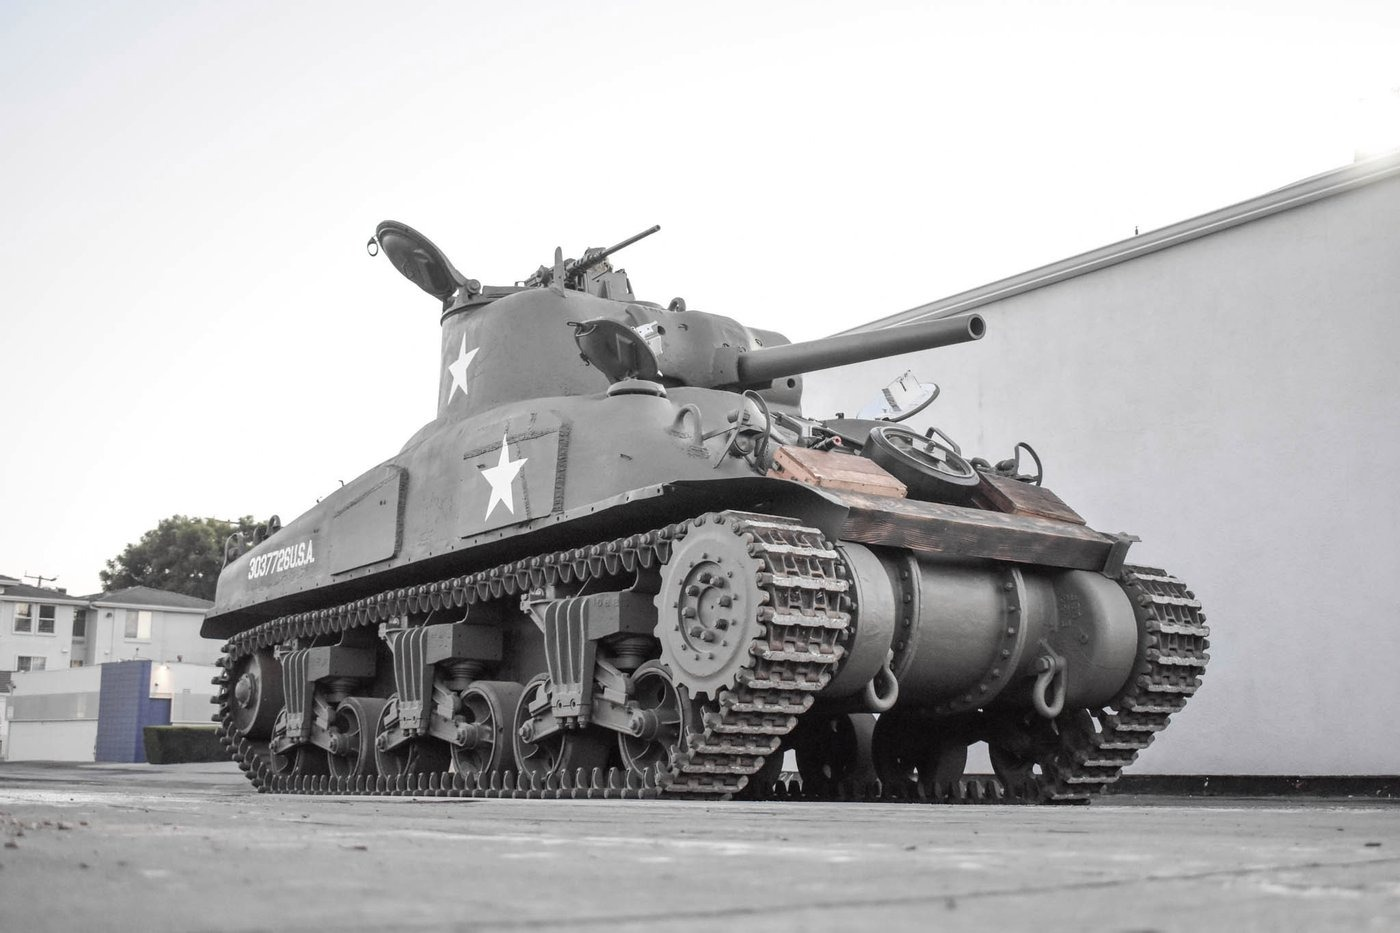 tanque sherman m4a1 2